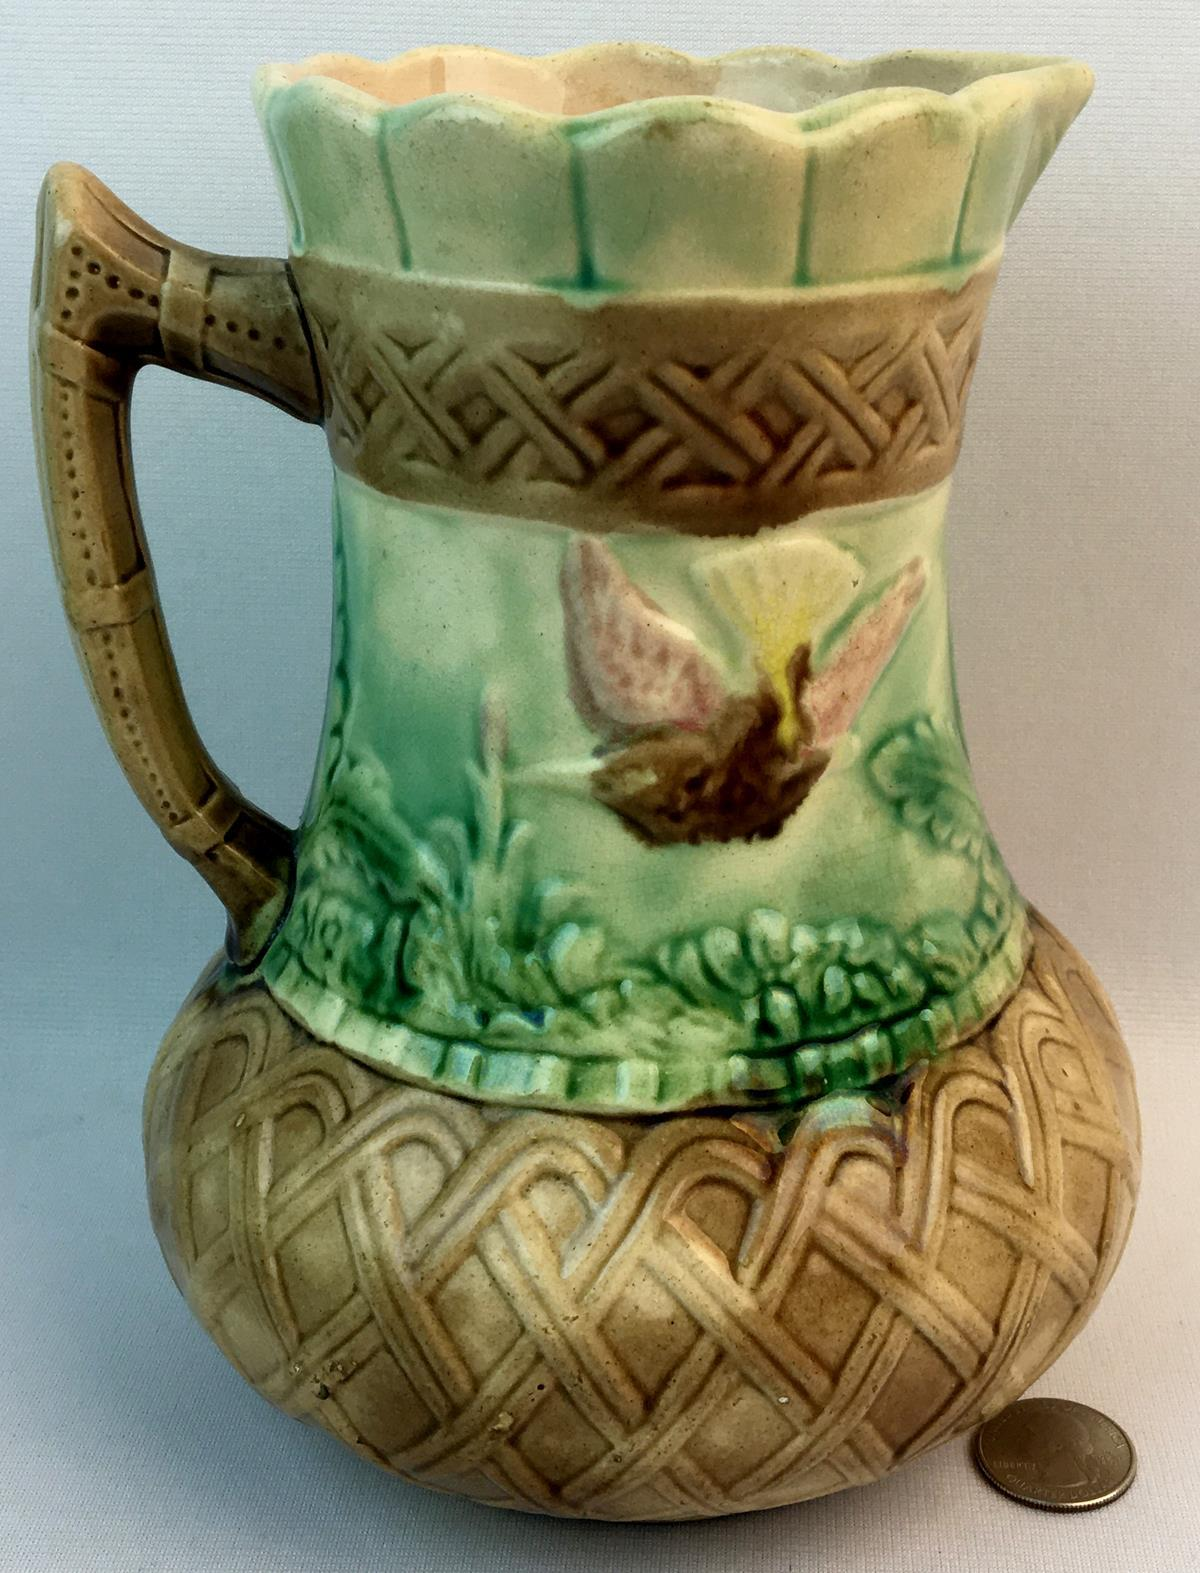 Antique 1800's Early Majolica Bulbous Base Pitcher w/ Bird, Butterfly & Basketweave Motif